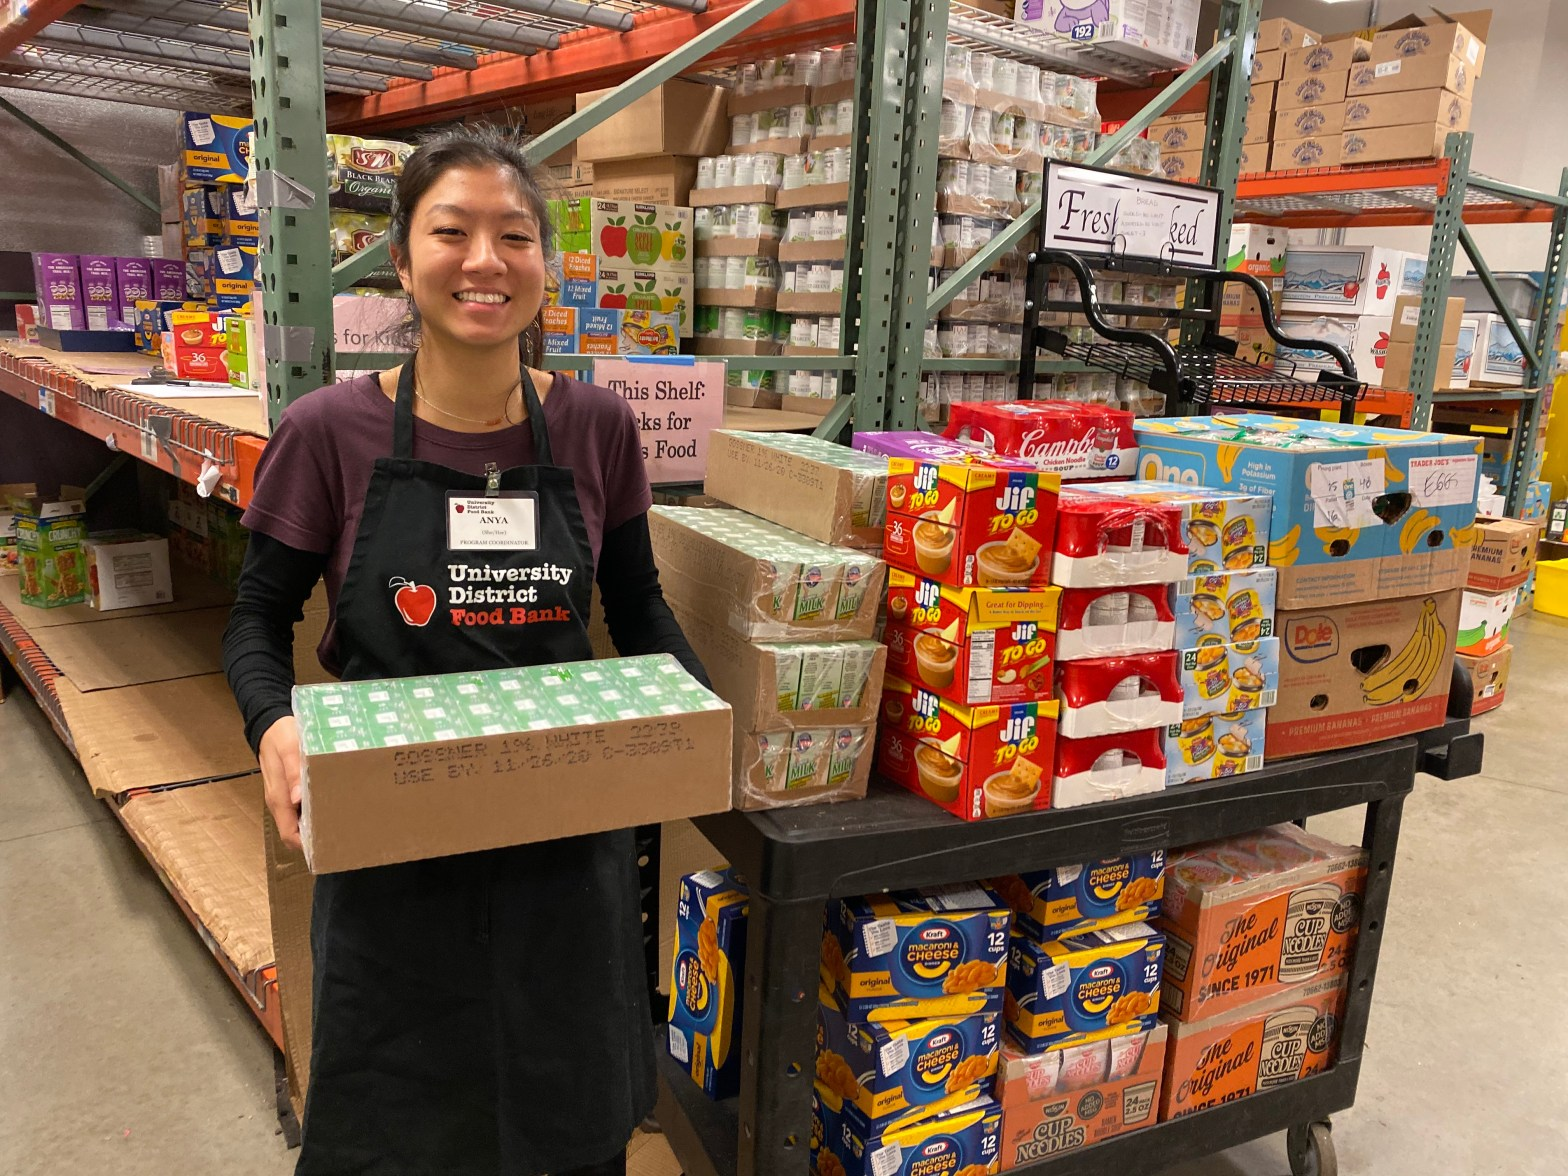 WSC member Anya serving with the University District Food Bank in Seattle, WA, posing with donated food in warehouse.